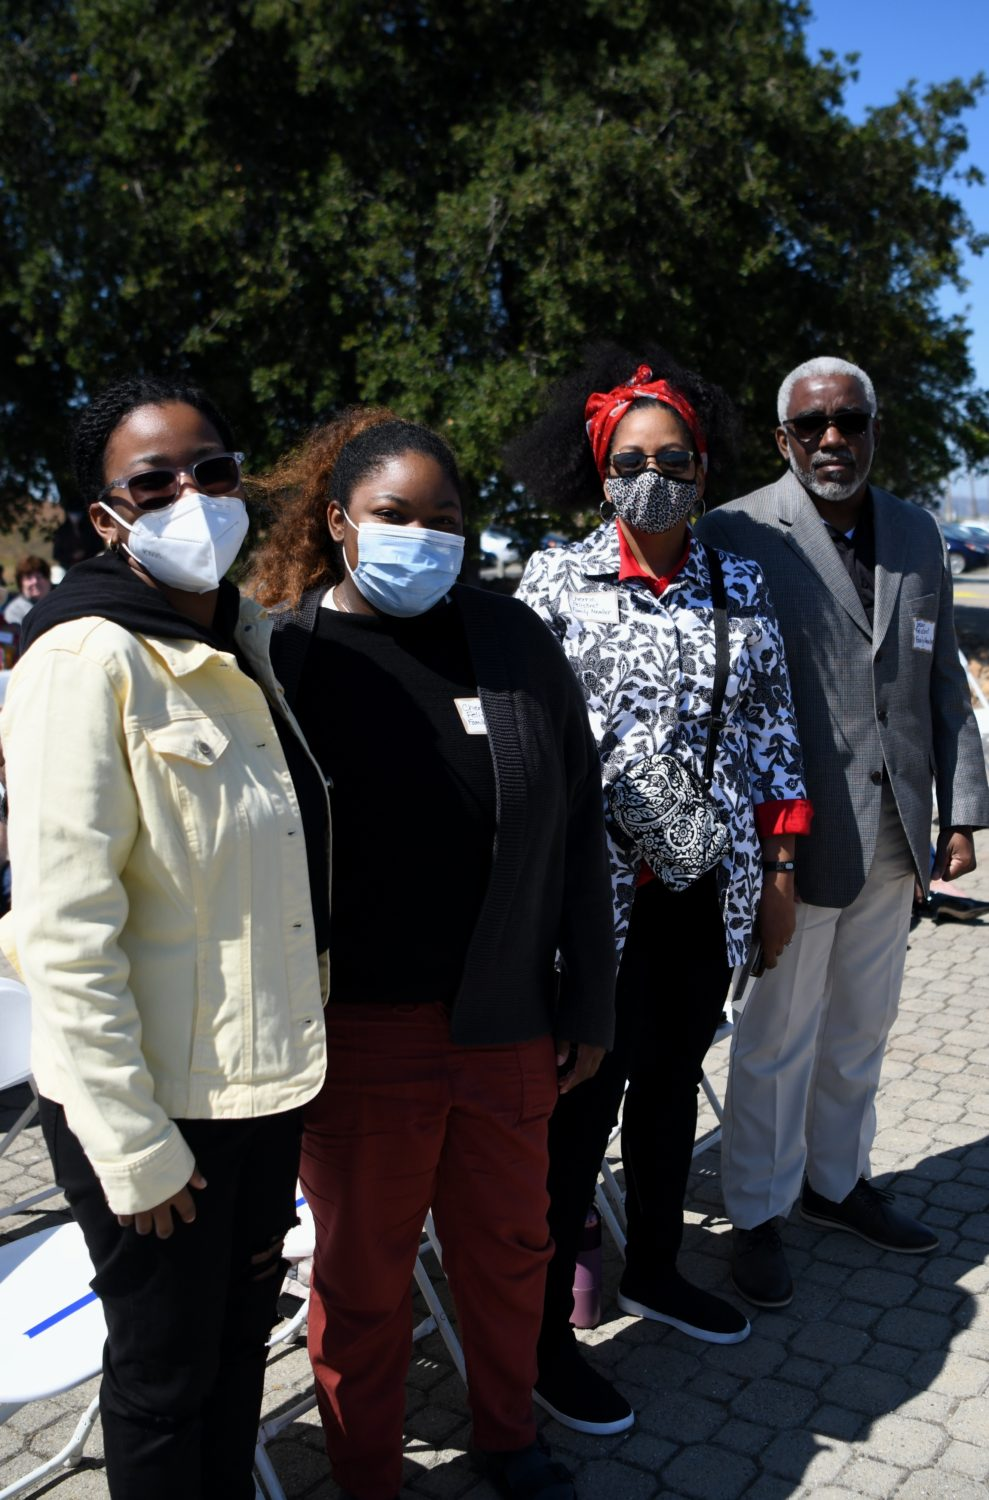 Jason-Felisbret-with-wife-and-two-daughters-at-at-the-77th-anniversary-commemoration-of-the-Port-Chicago-Explosion-by-Johnnie-Burrell-071721, 77th anniversary commemoration of the Port Chicago Explosion, Local News & Views